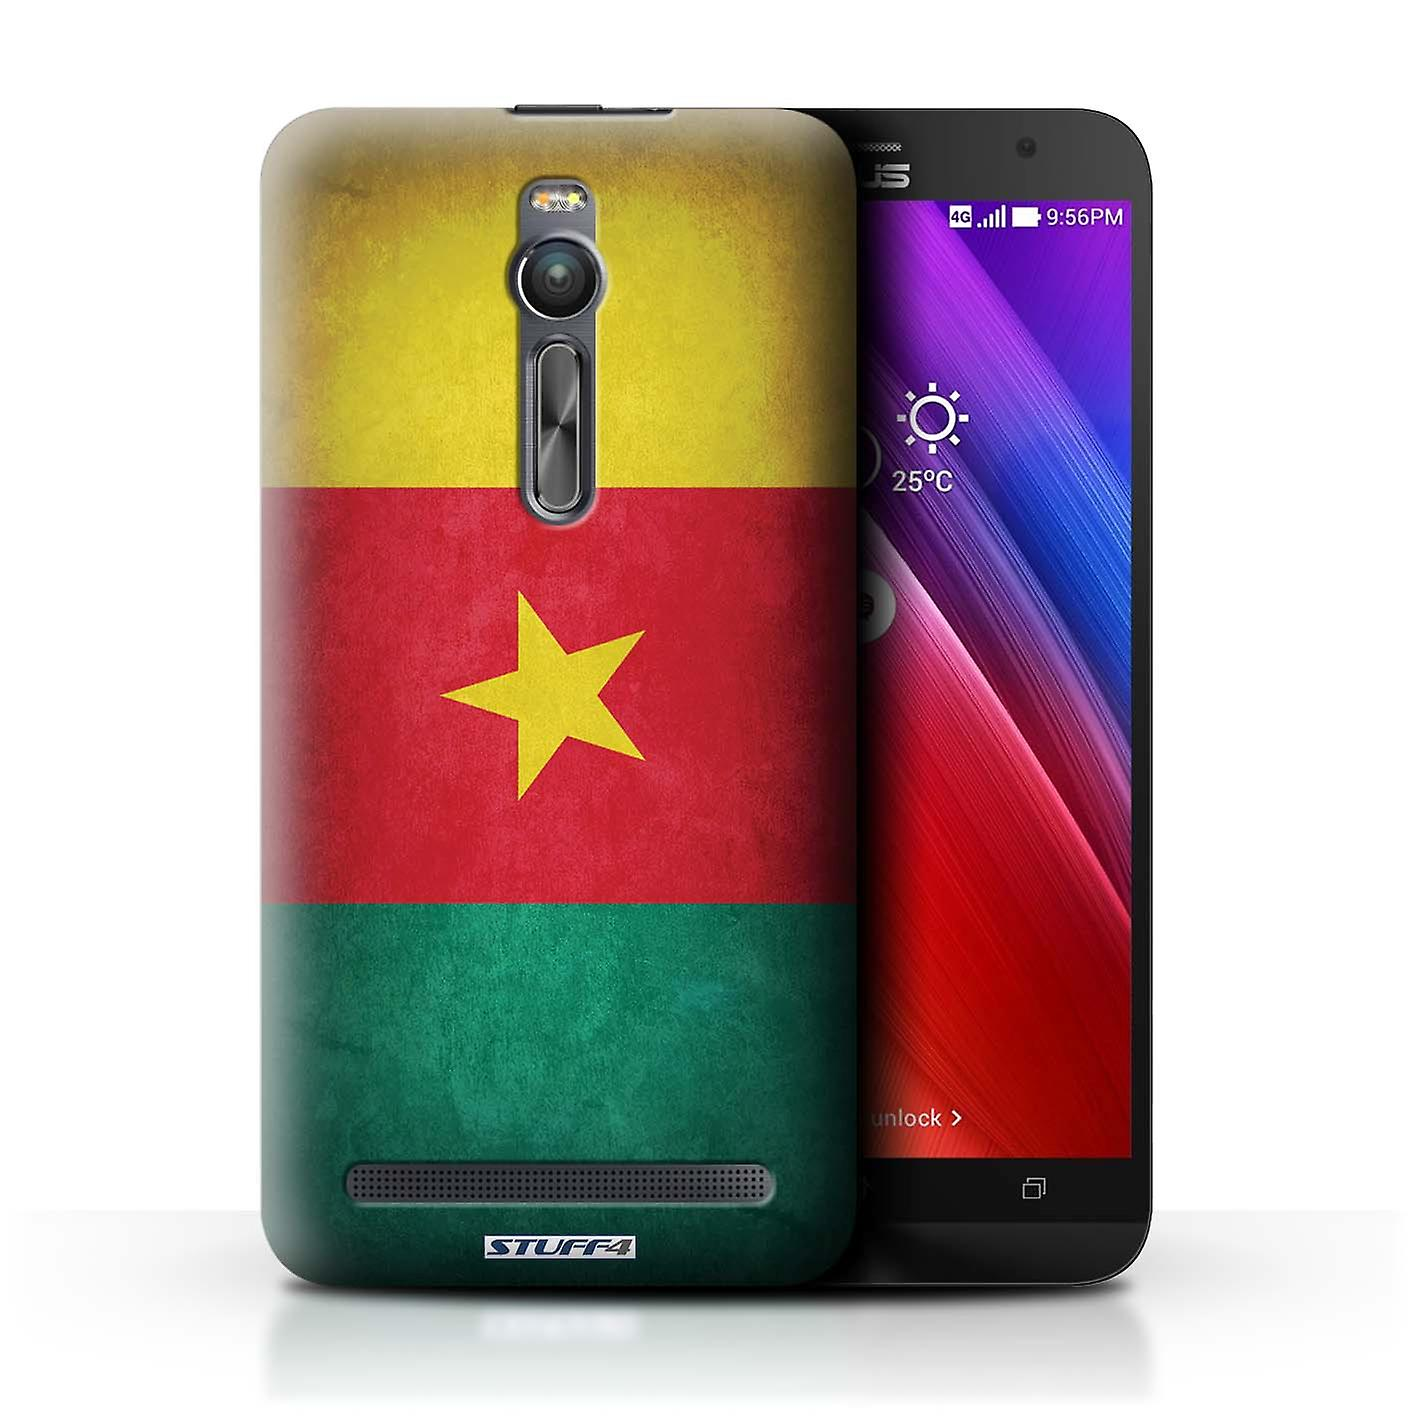 STUFF4 Case/Cover for Asus Zenfone 2 ZE551ML/Cameroon/Cameroonian/Flags